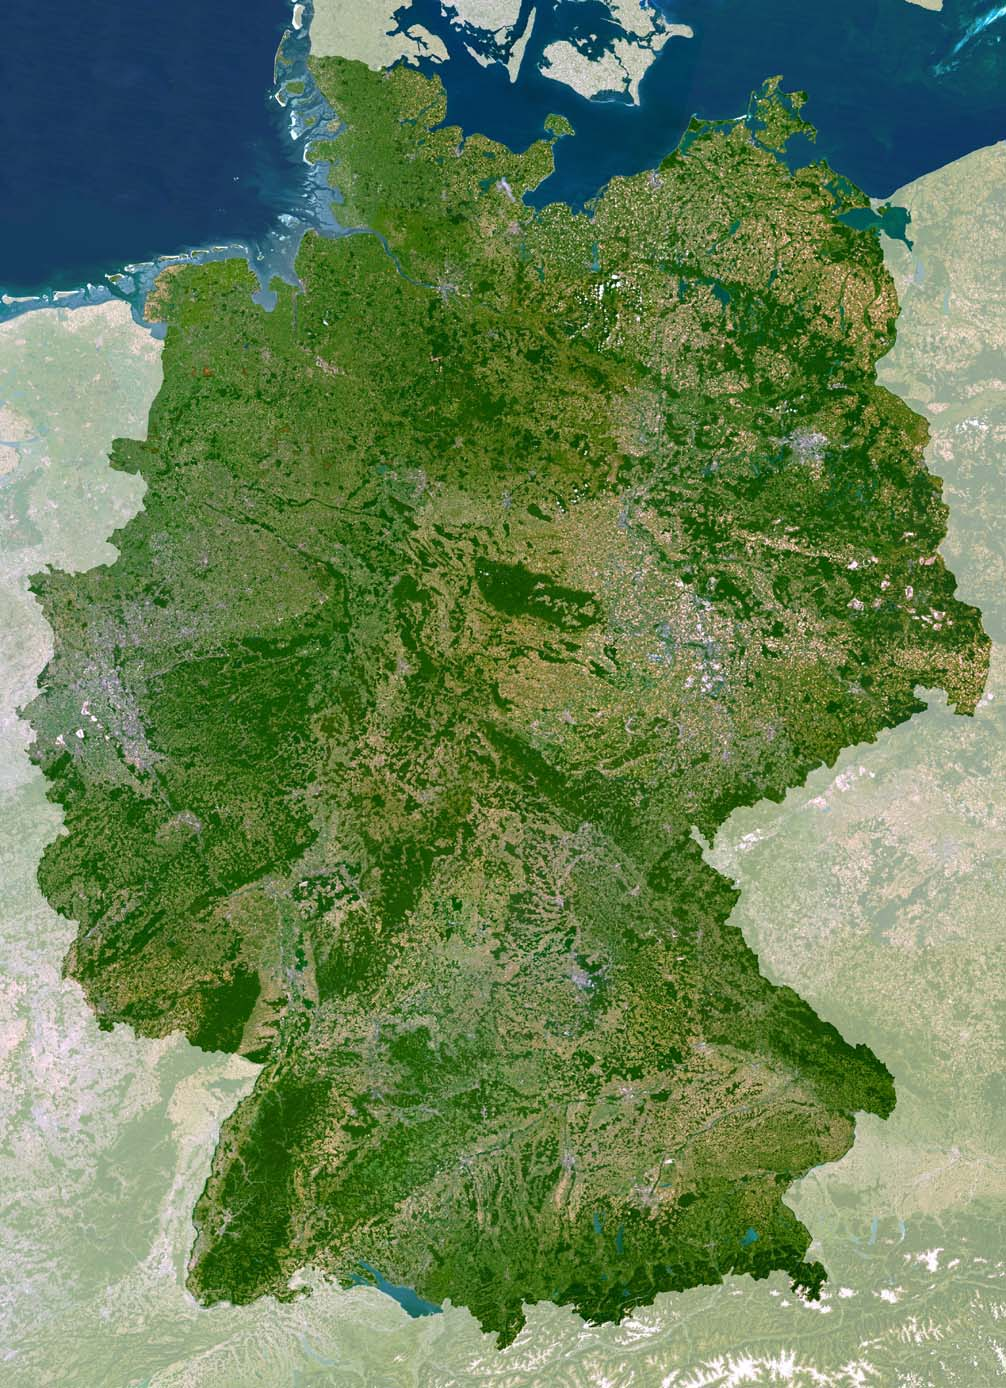 Satellite view of Germany.